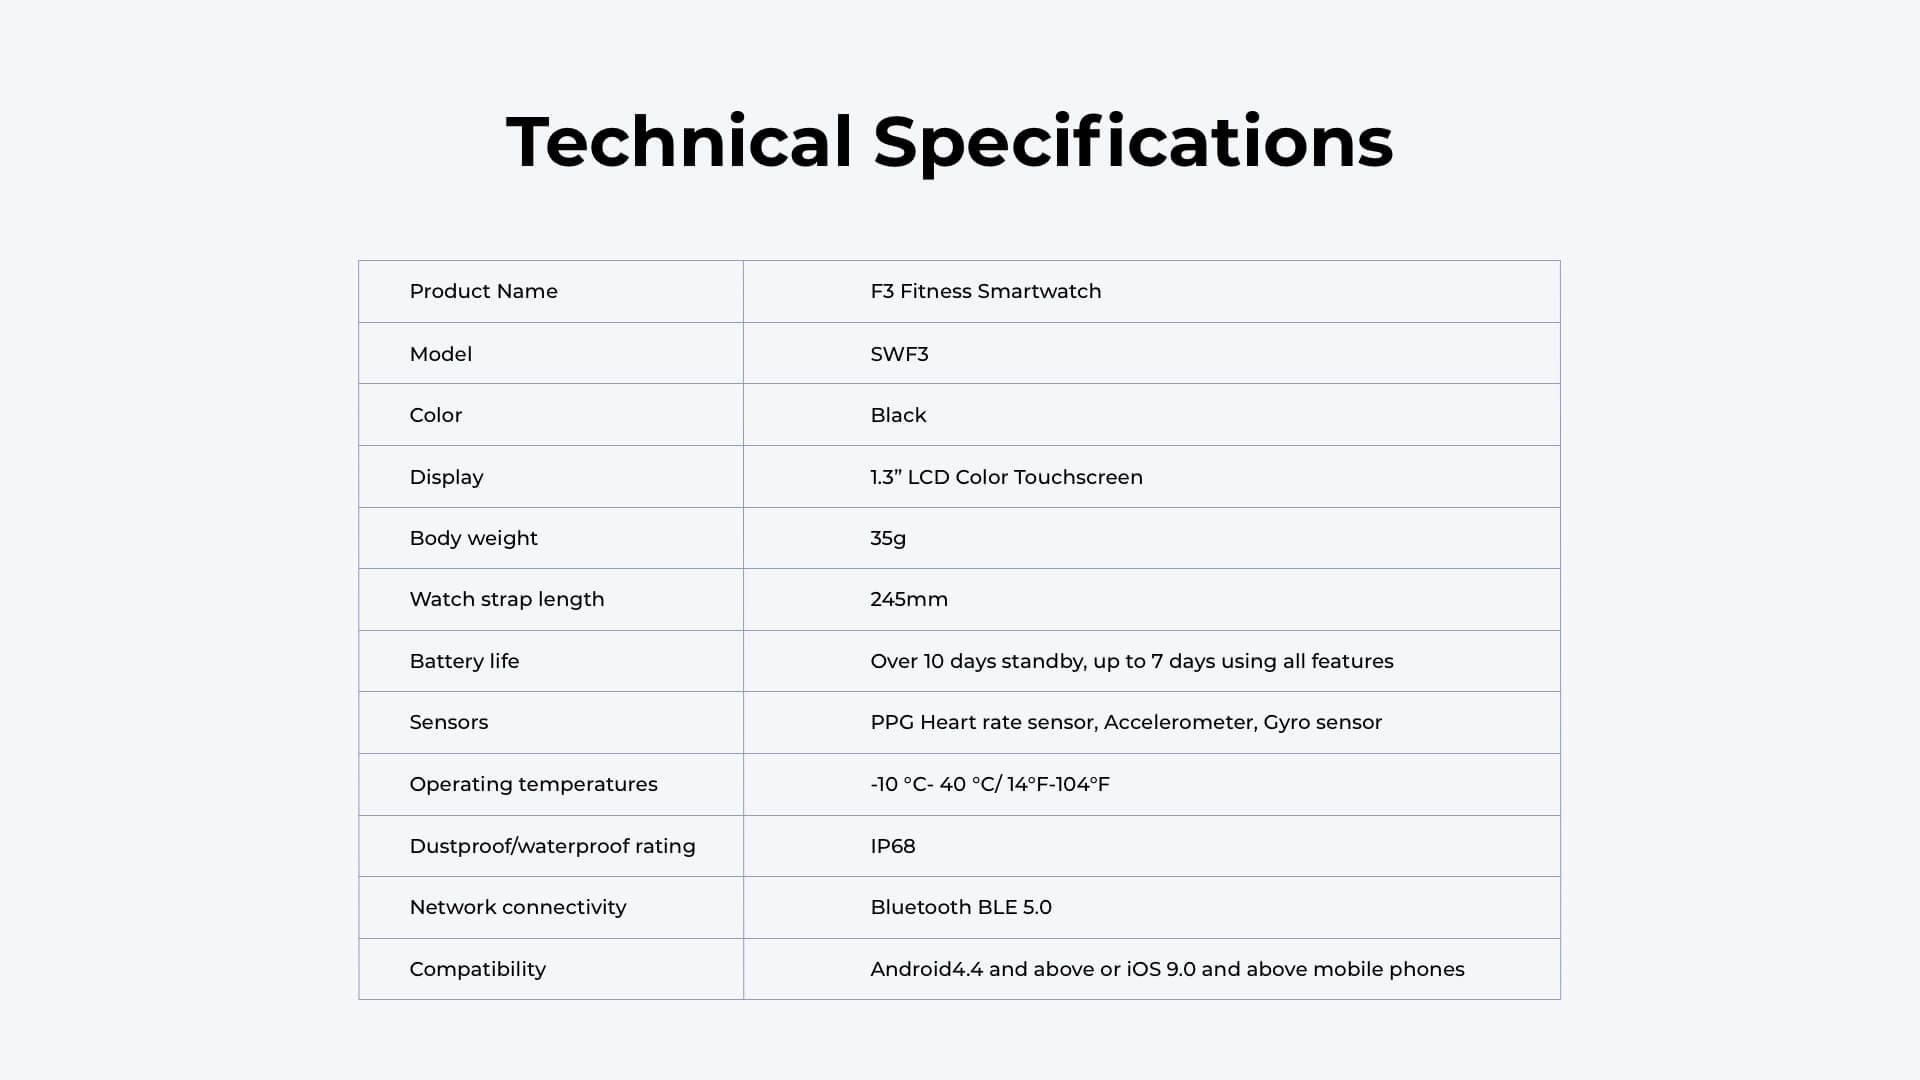 Runtopia F3 Fitness Smartwatch Technical Specifications